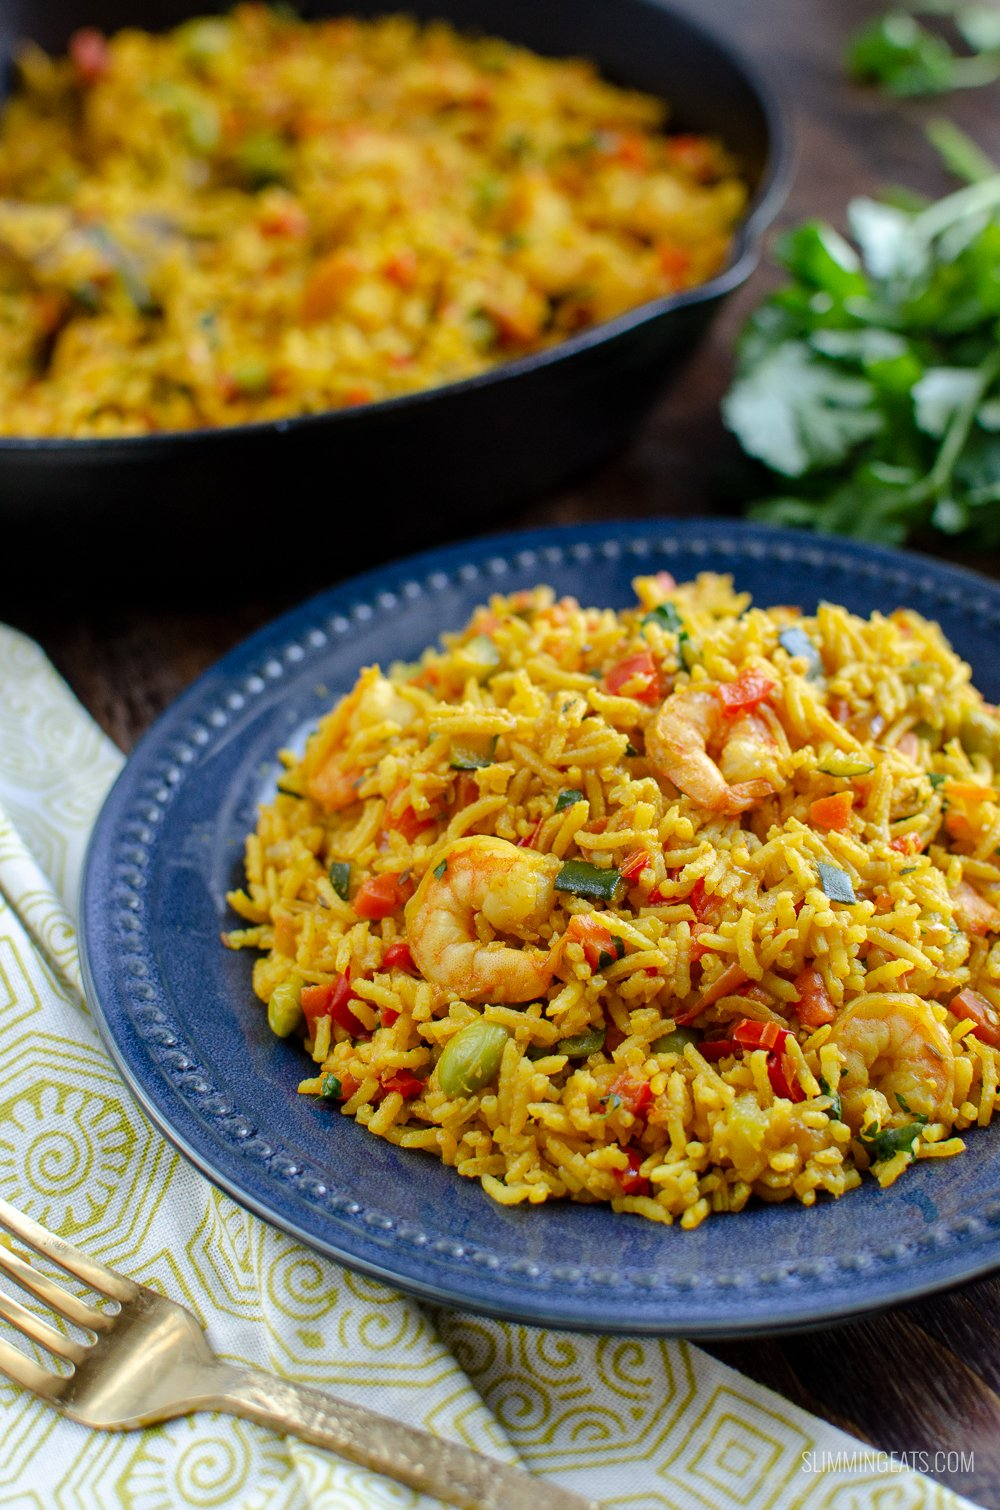 prawn and vegetable rice pilaf on blue plate with skillet in background